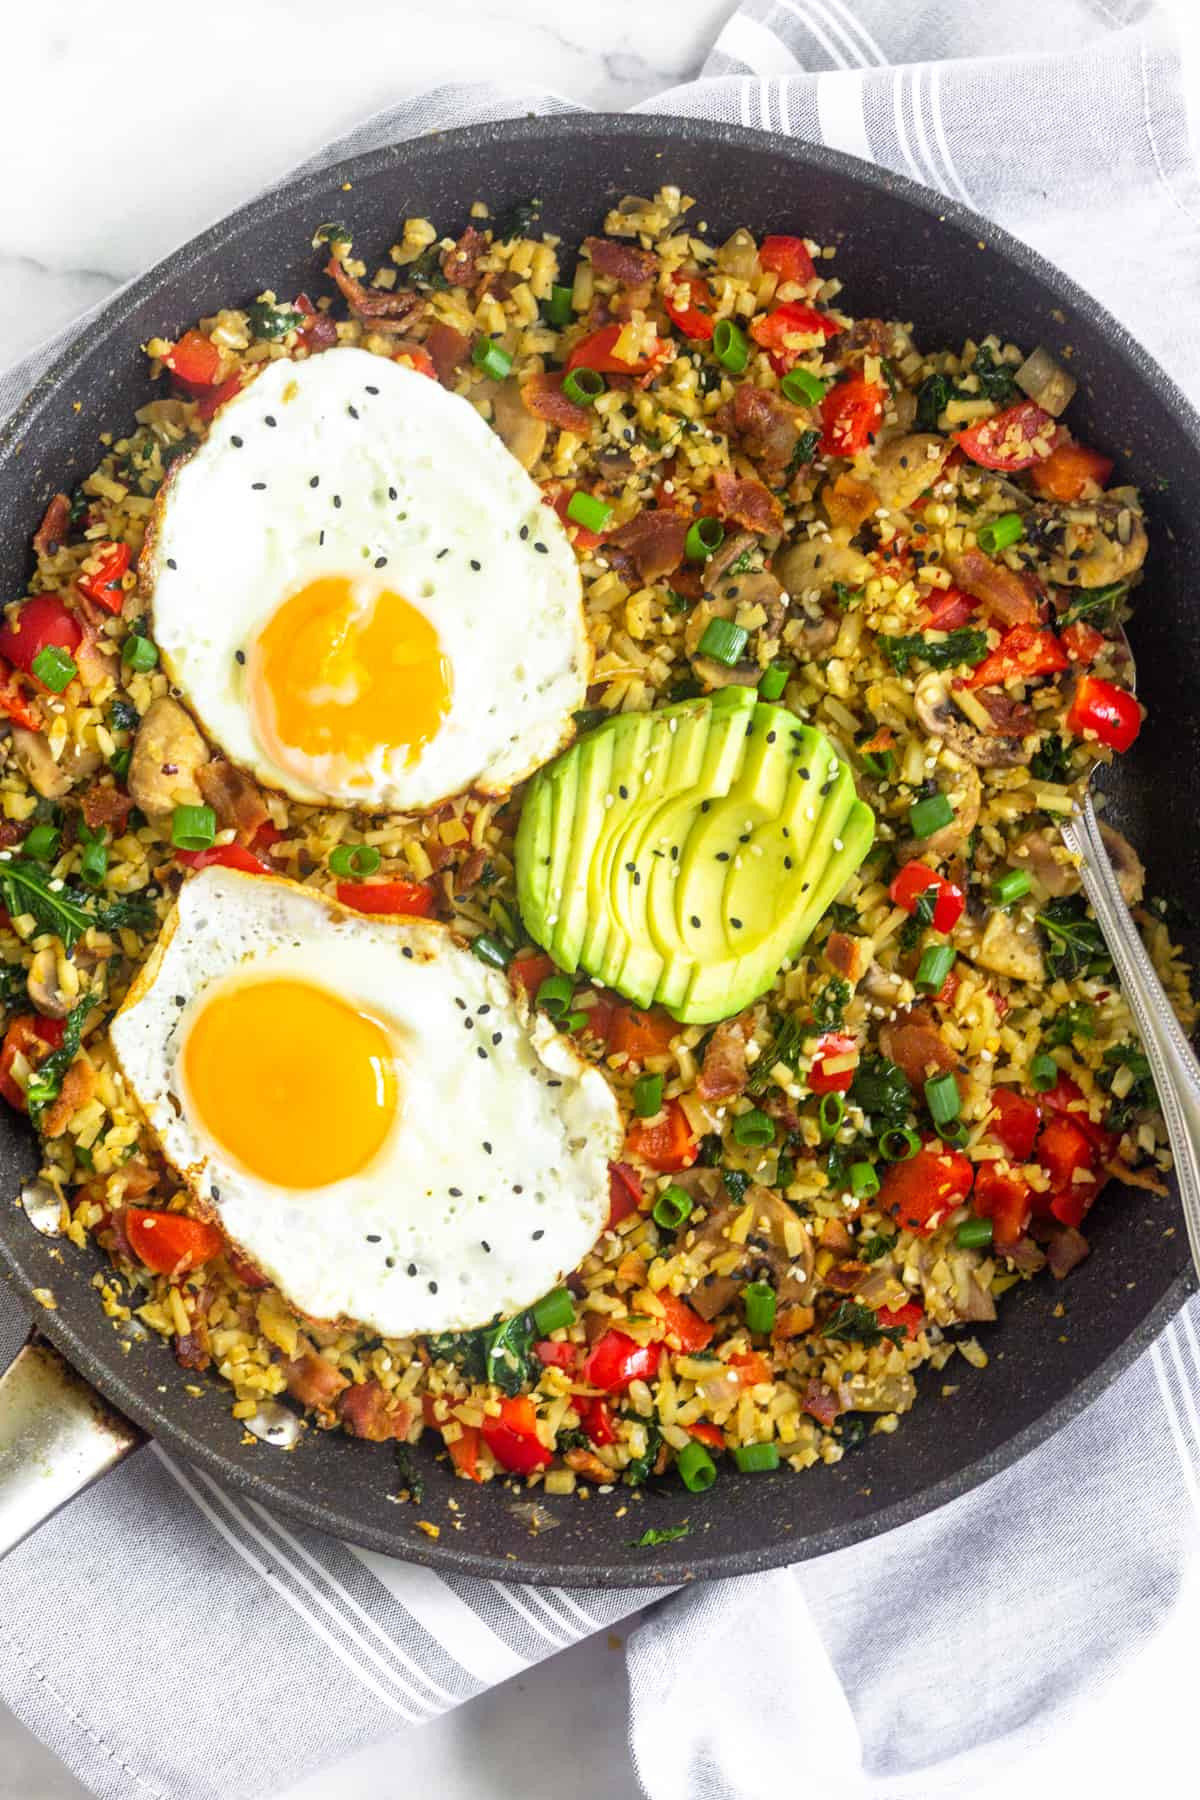 Large saute pan filled with whole30 and paleo breakfast fried rice topped with two fried eggs, sliced avocado, and sesame seeds